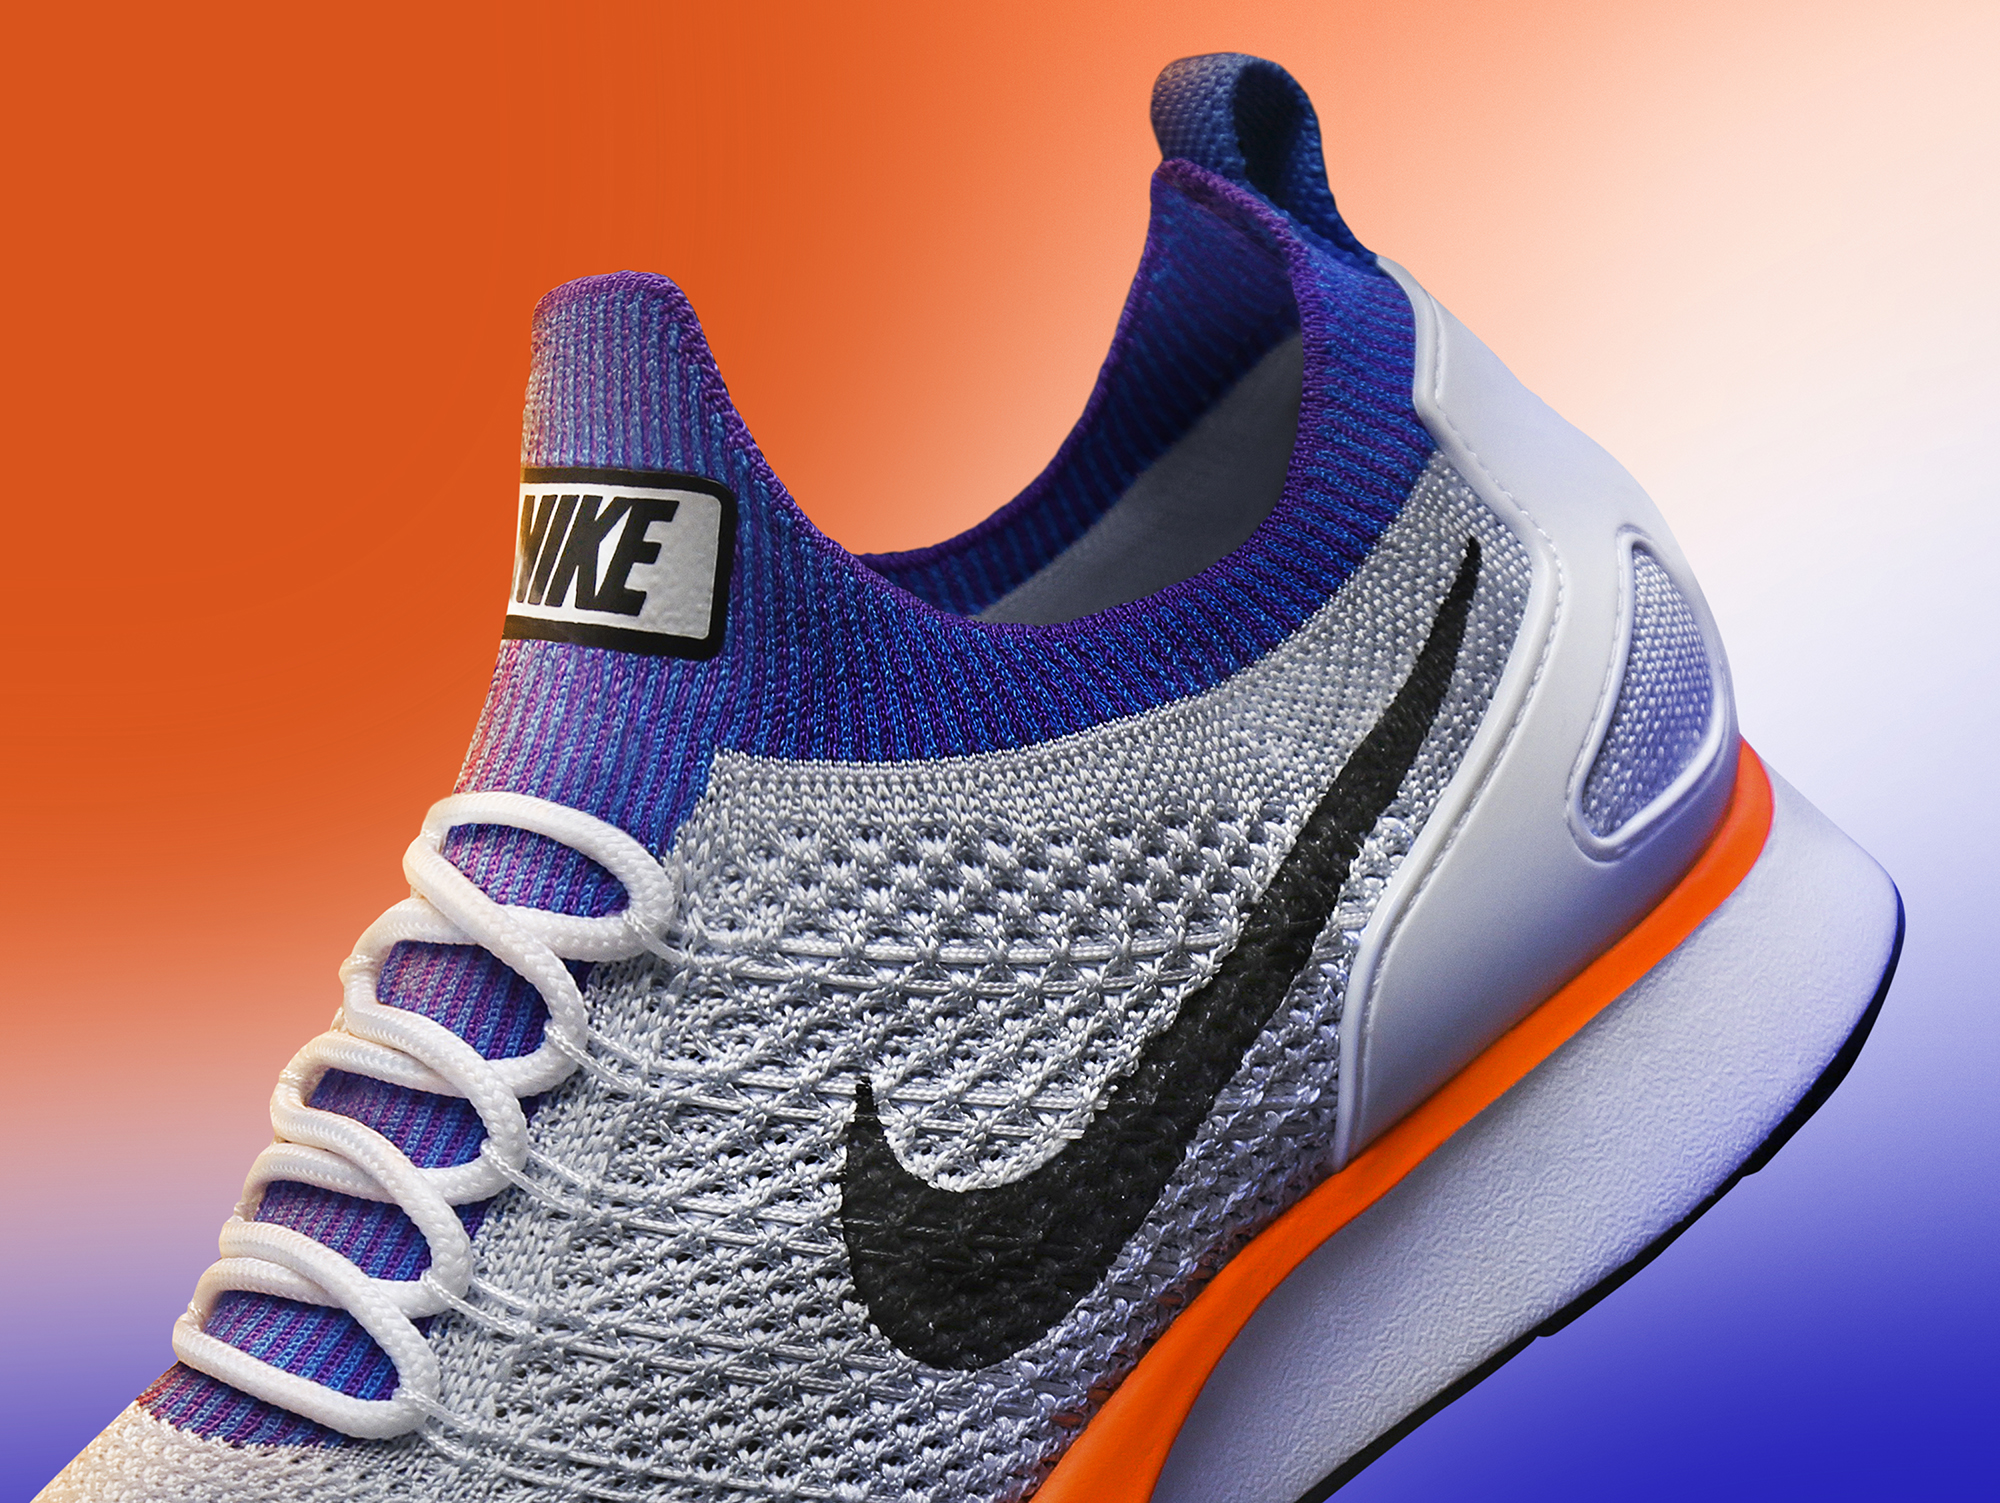 0f268d33eda9c The Nike Air Zoom Mariah Racer Flyknit will be available online and in  size  stores on Thursday 22nd